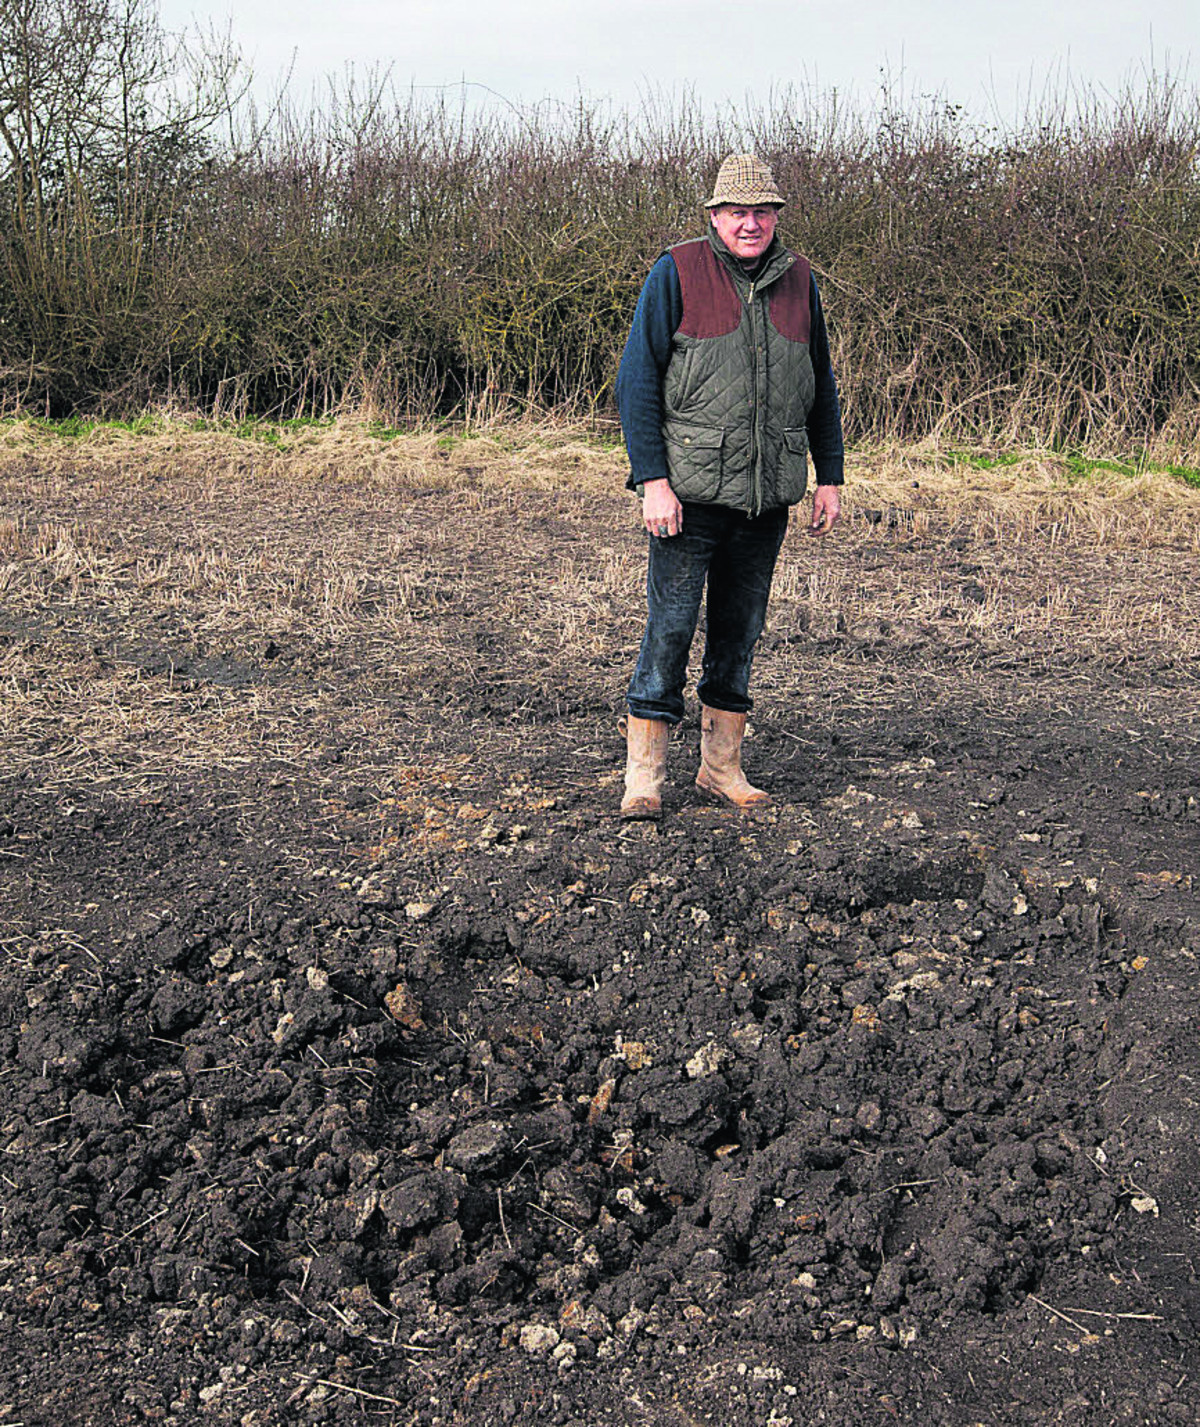 MoD artillery shell flies over Wiltshire villages making crater near Paddington railway line